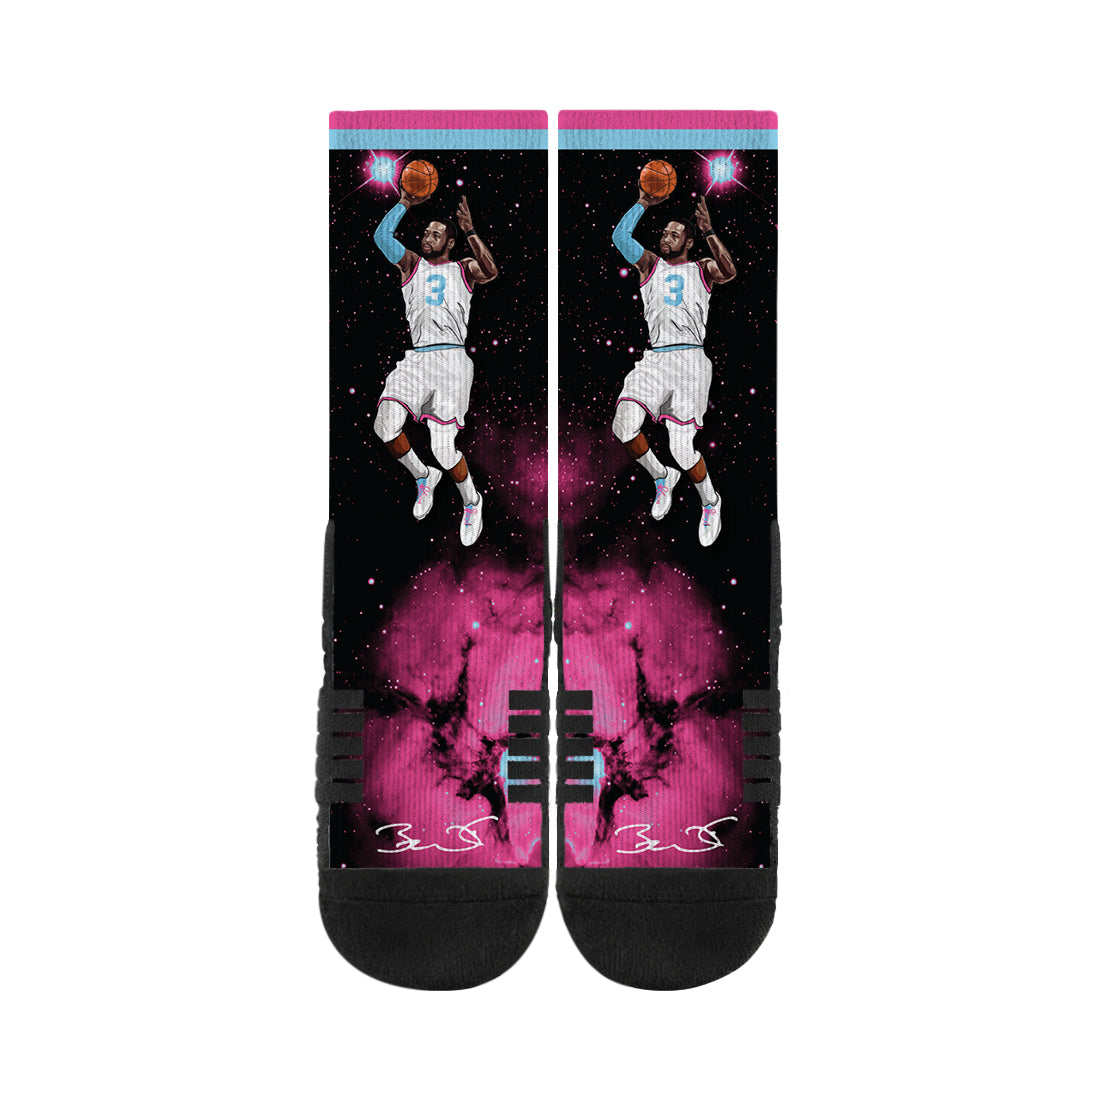 Dwayne Wade Floater Vice Galaxy Black Socks